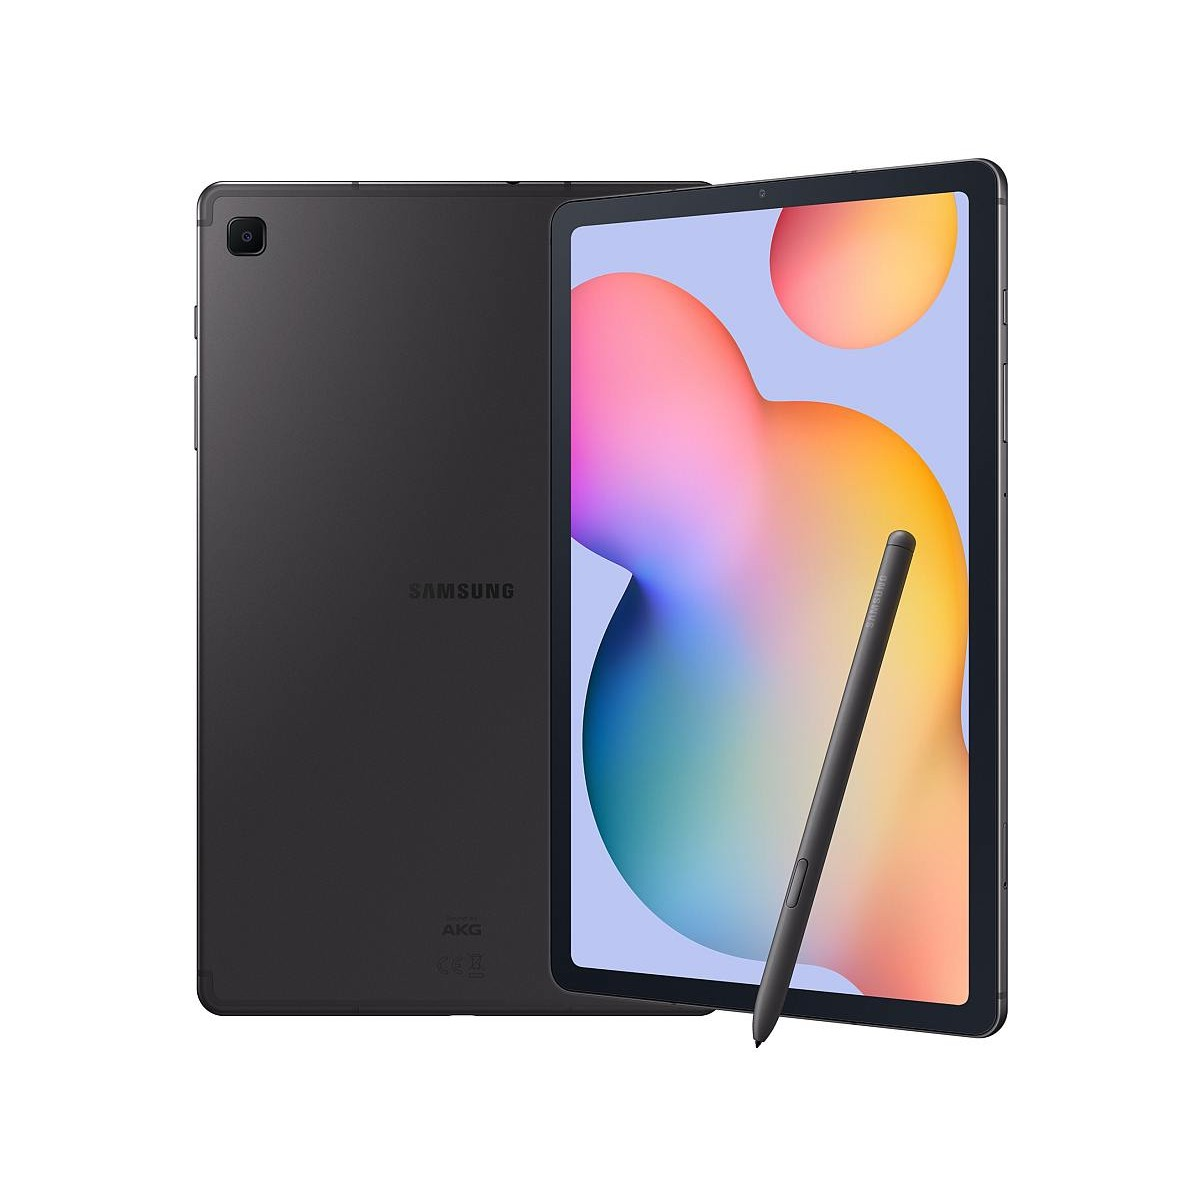 Image of Samsung Galaxy Tab S6 Lite SM-P610 4GB/64GB Wifi - Oxford Gray